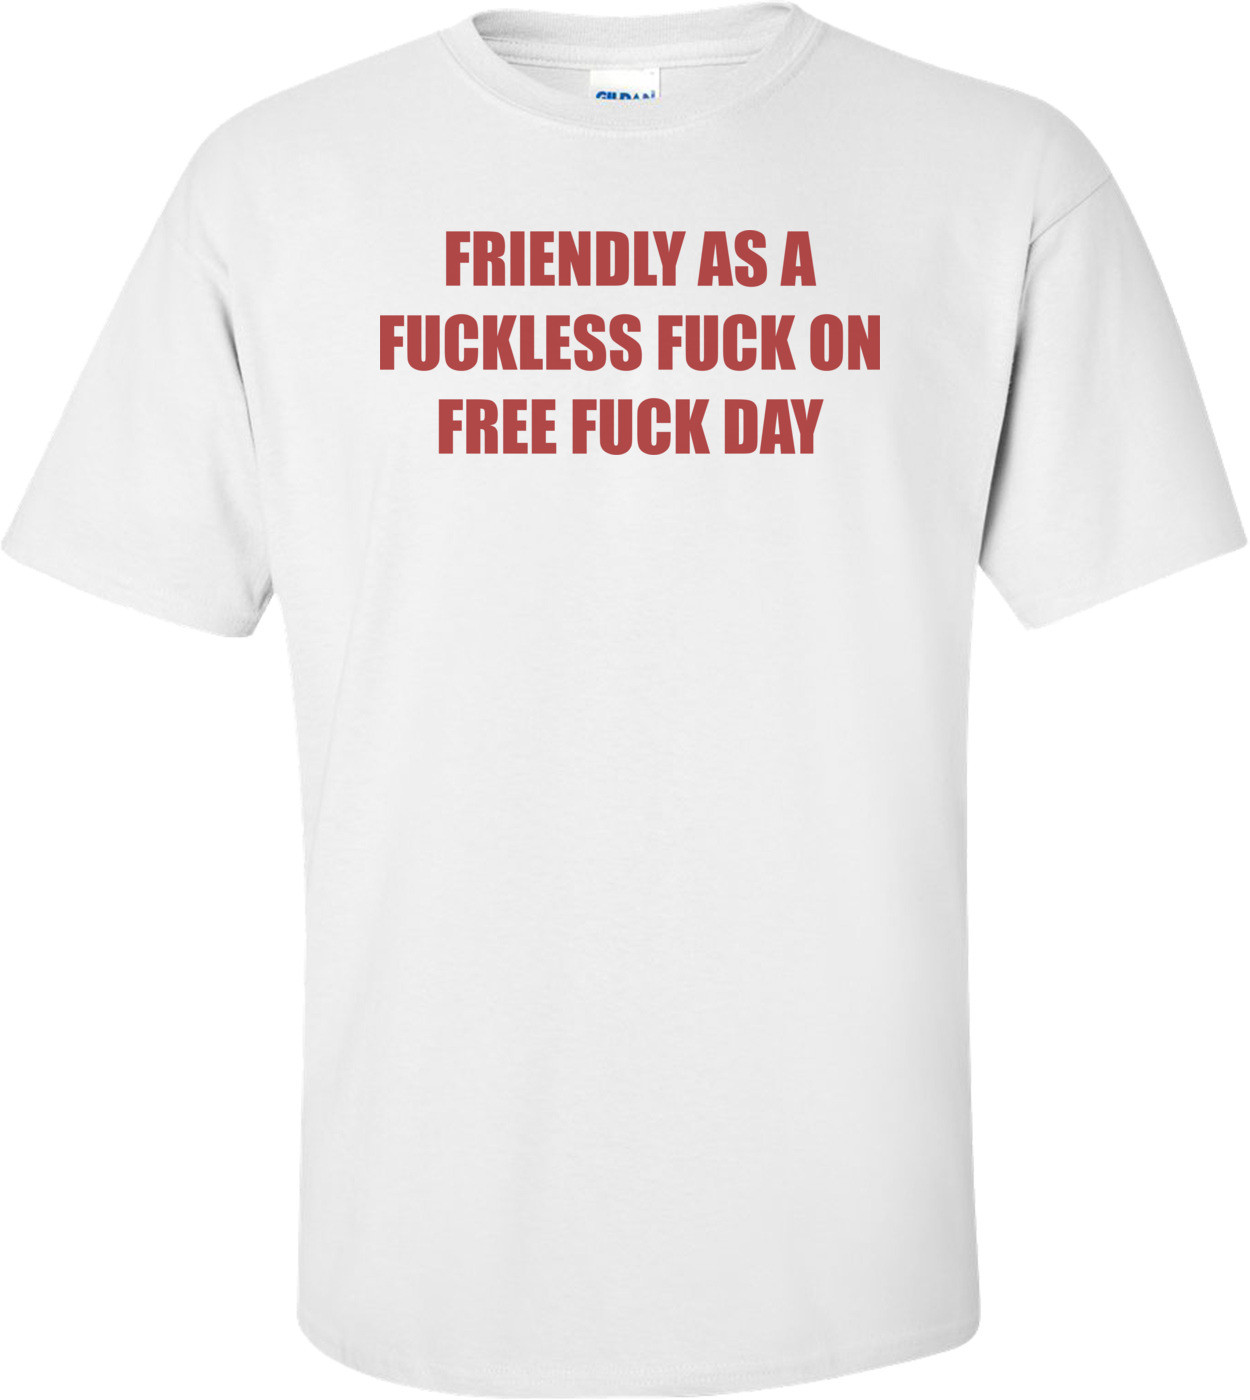 FRIENDLY AS A FUCKLESS FUCK ON FREE FUCK DAY Shirt